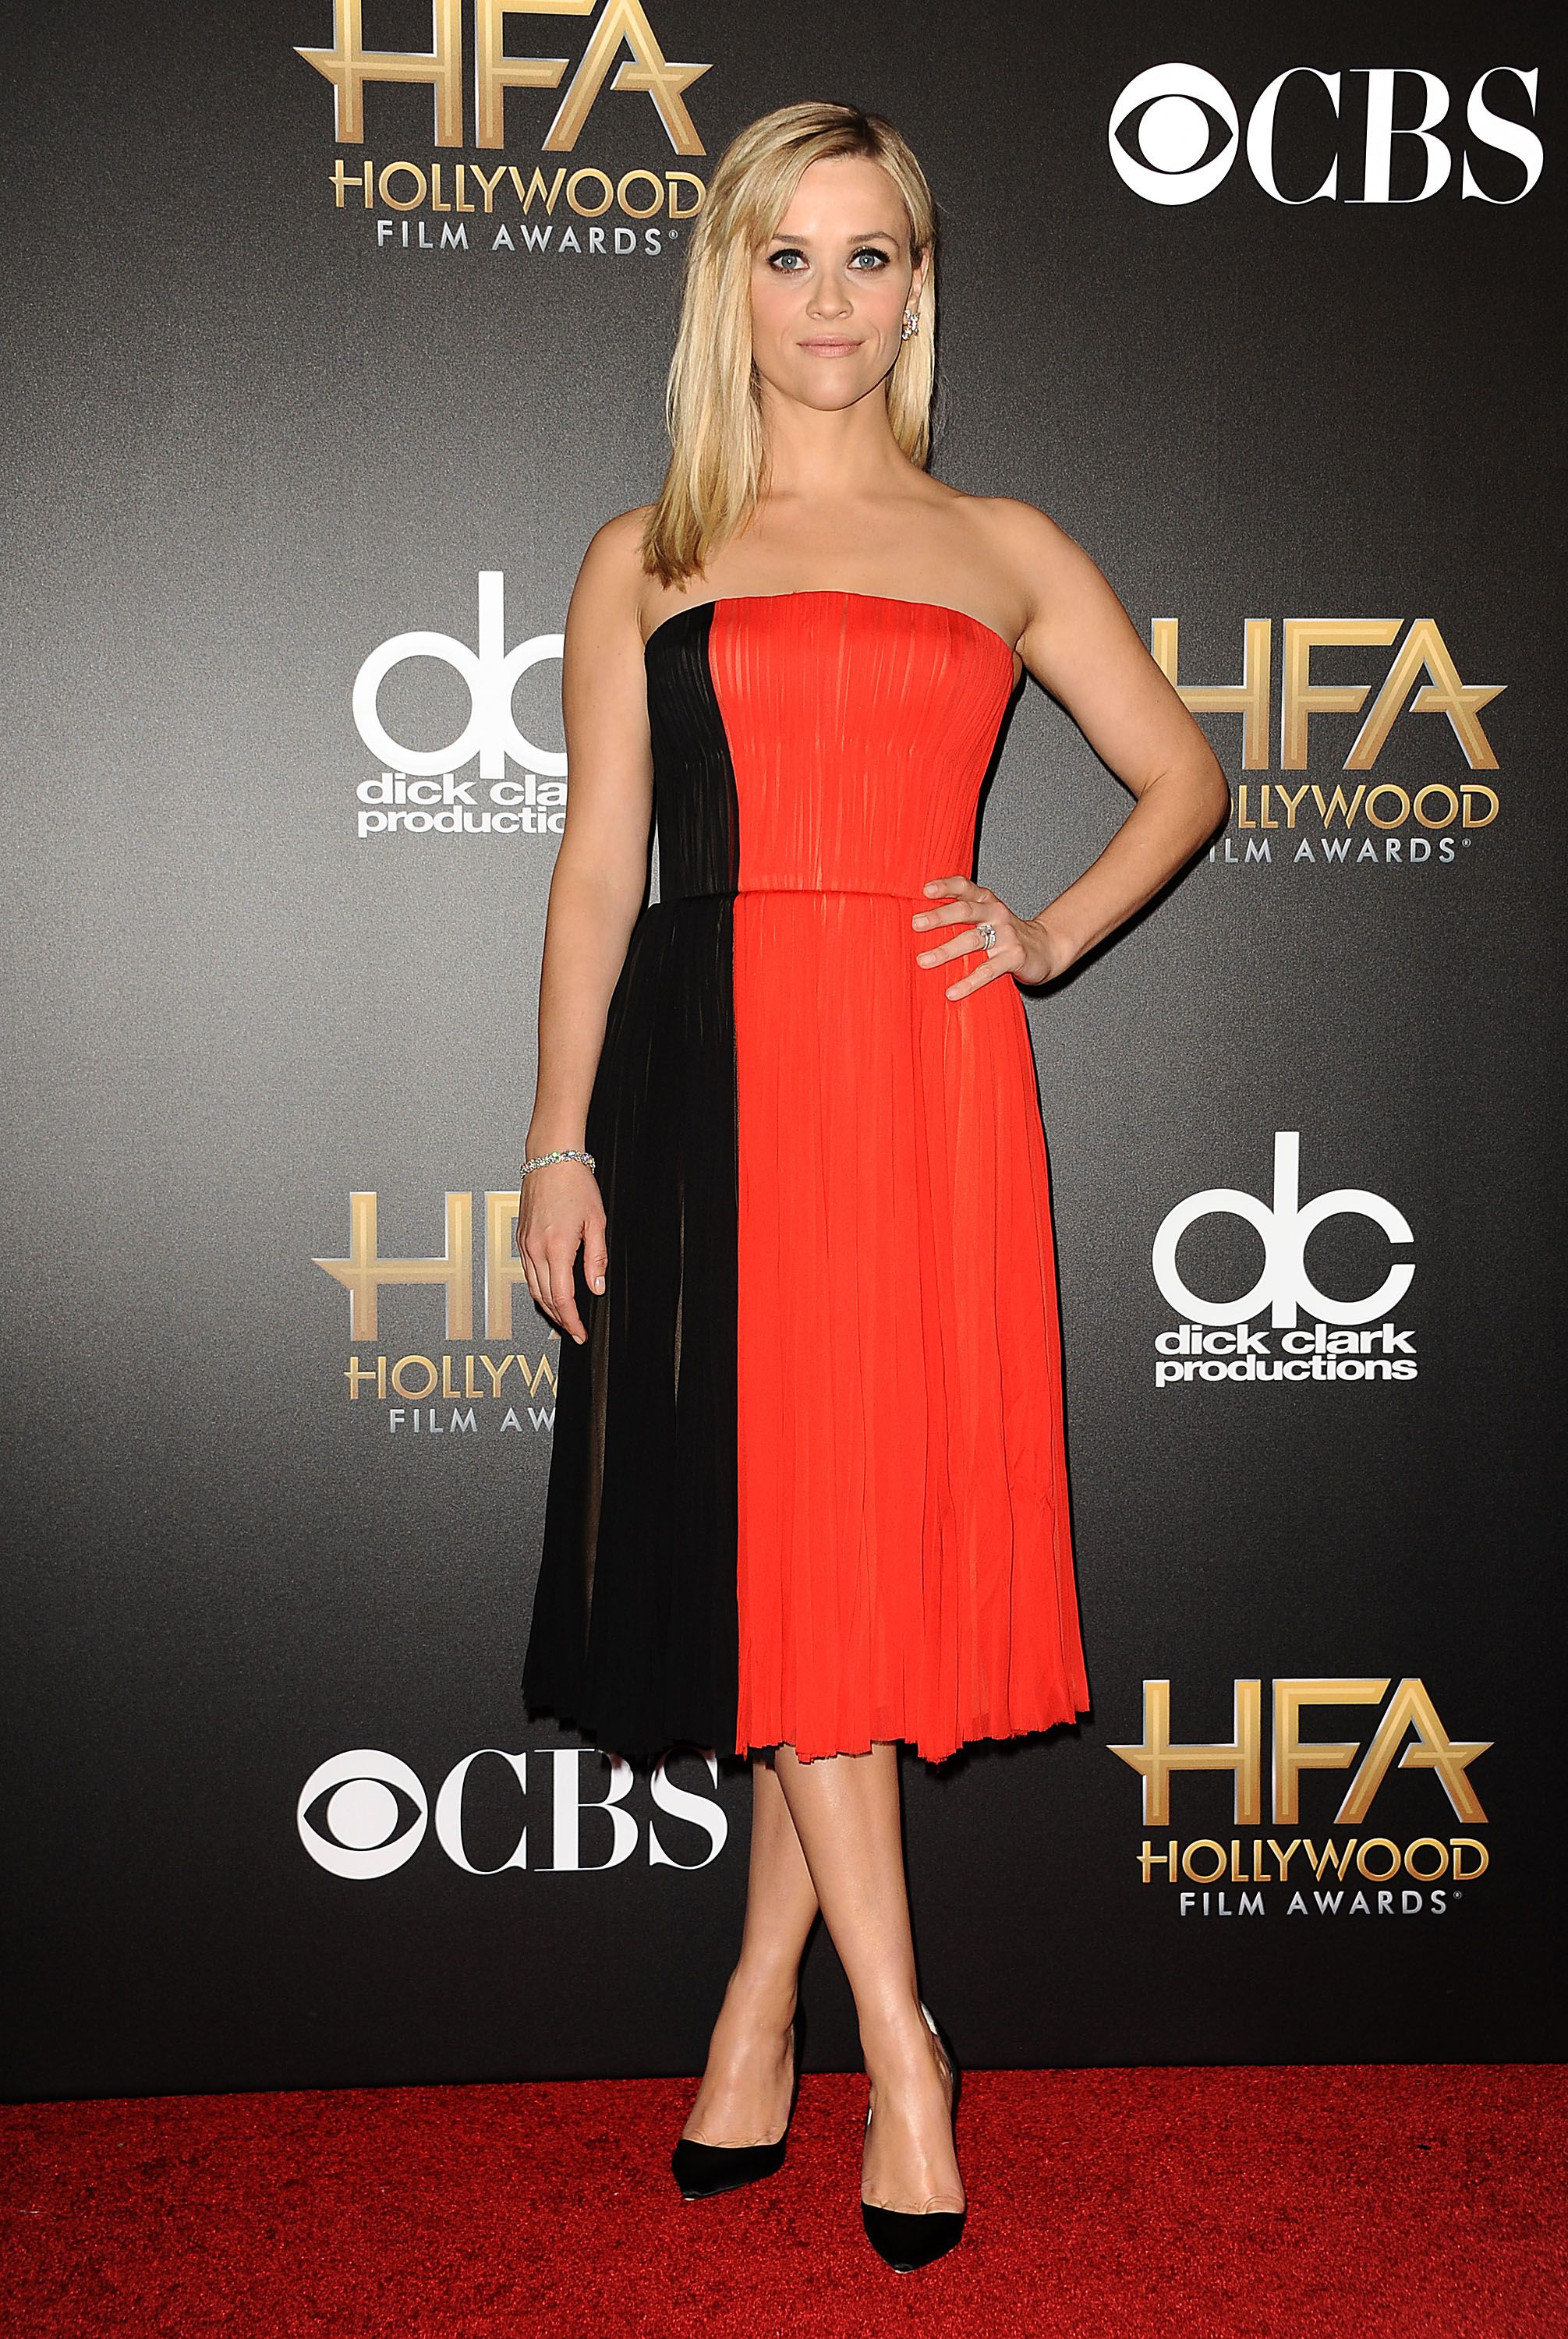 Reese Witherspoon Style - Fashion Pictures of Reese Witherspoon